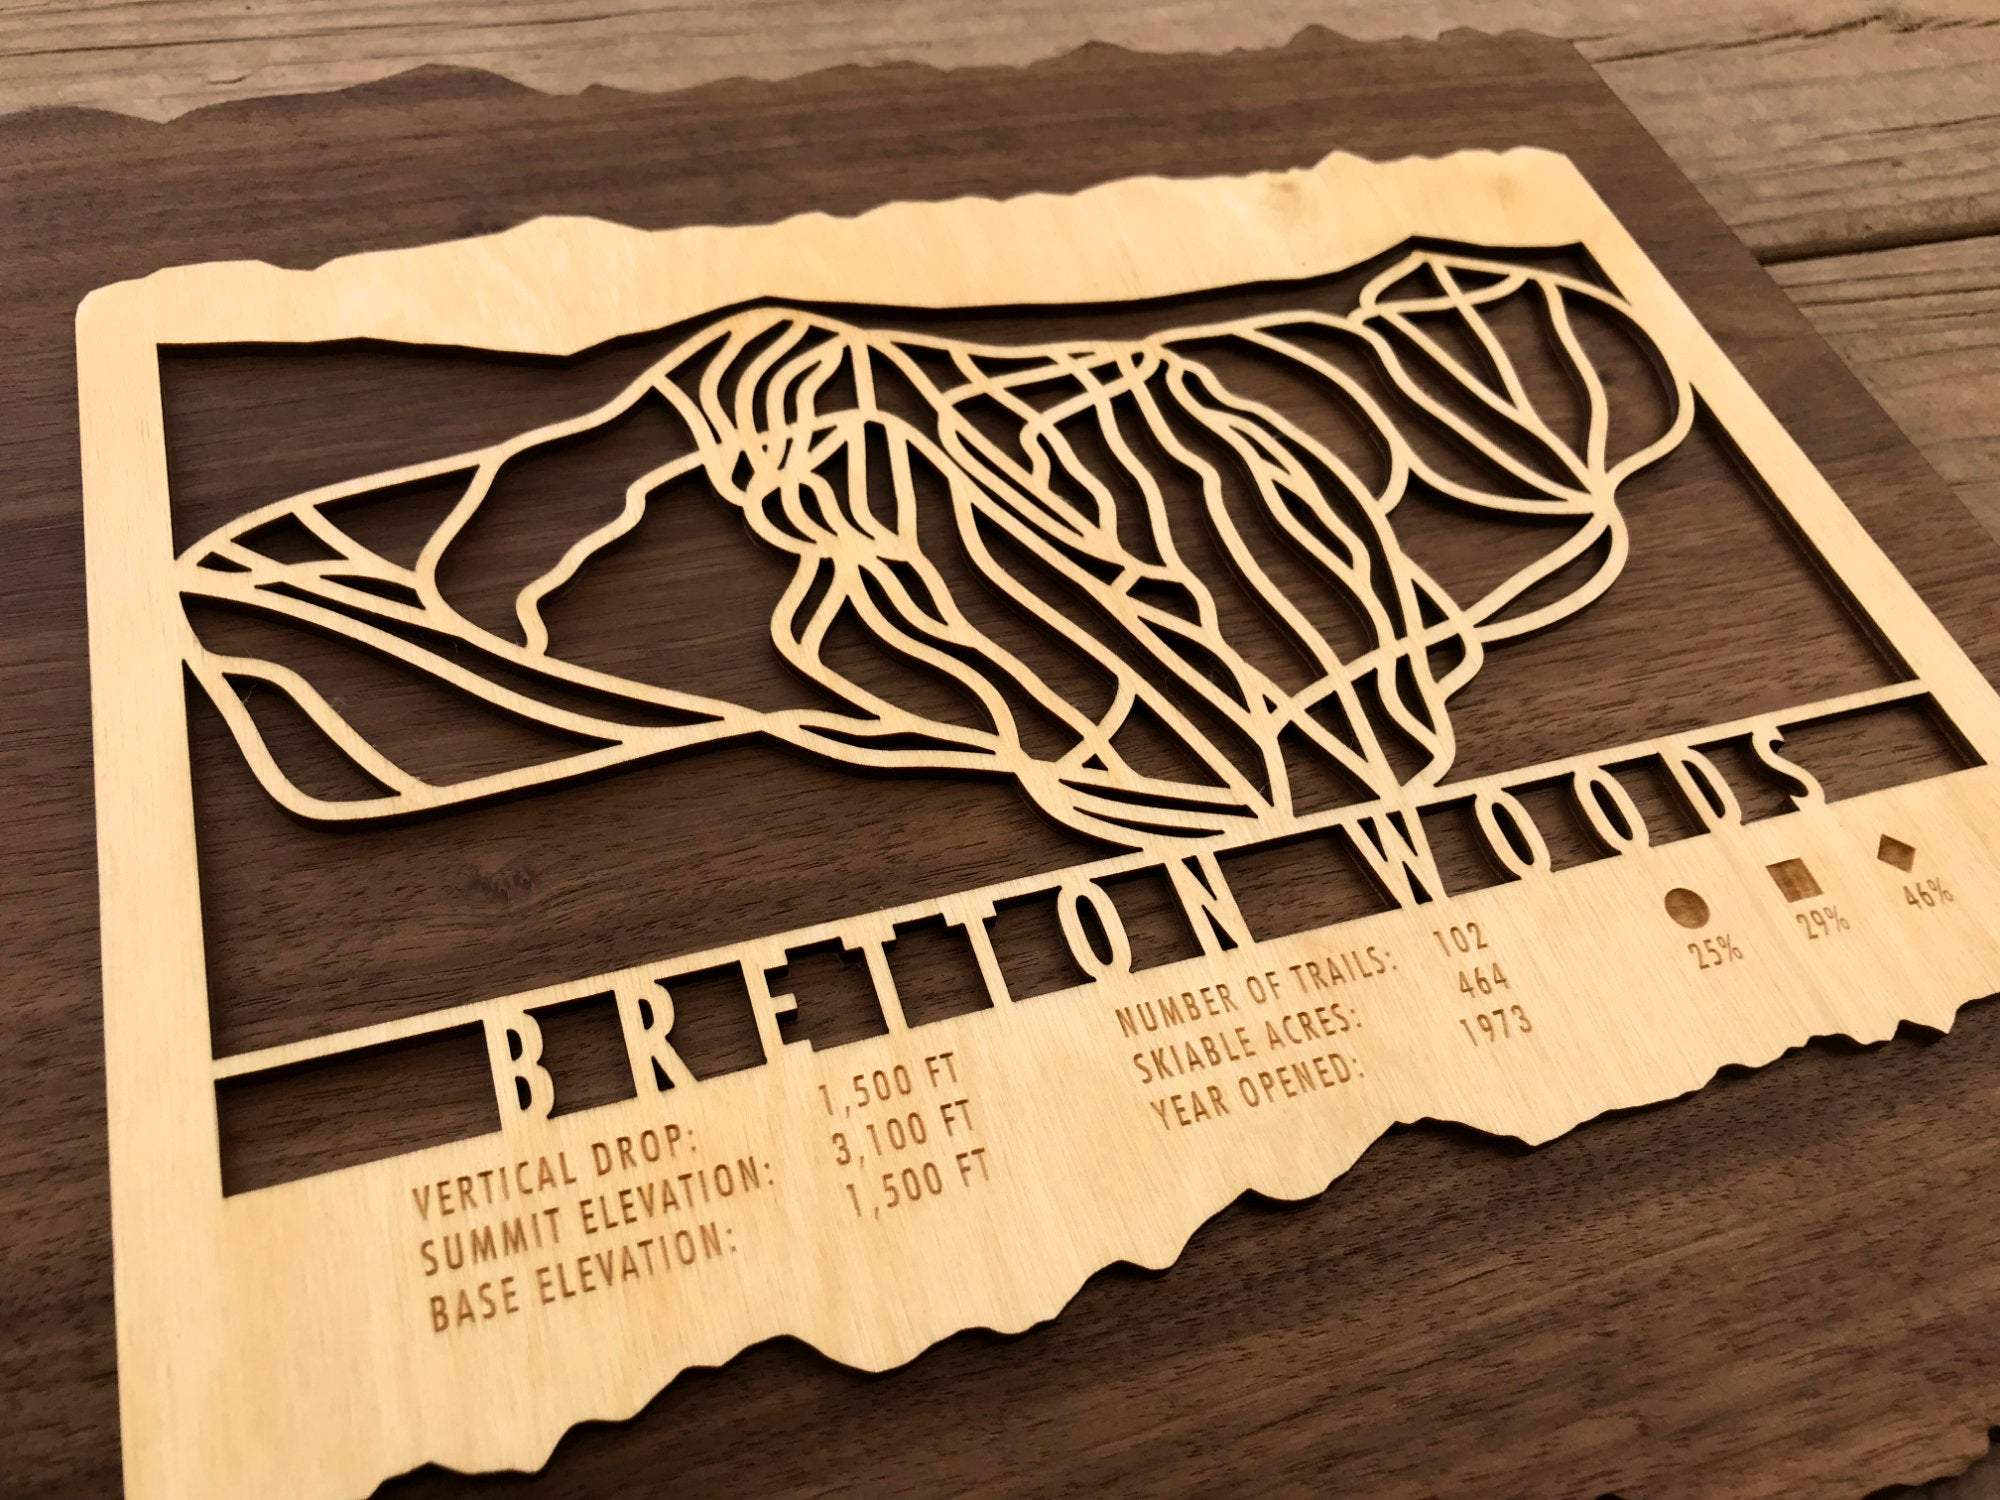 Bretton Woods Ski Decor Trail Map Art - MountainCut